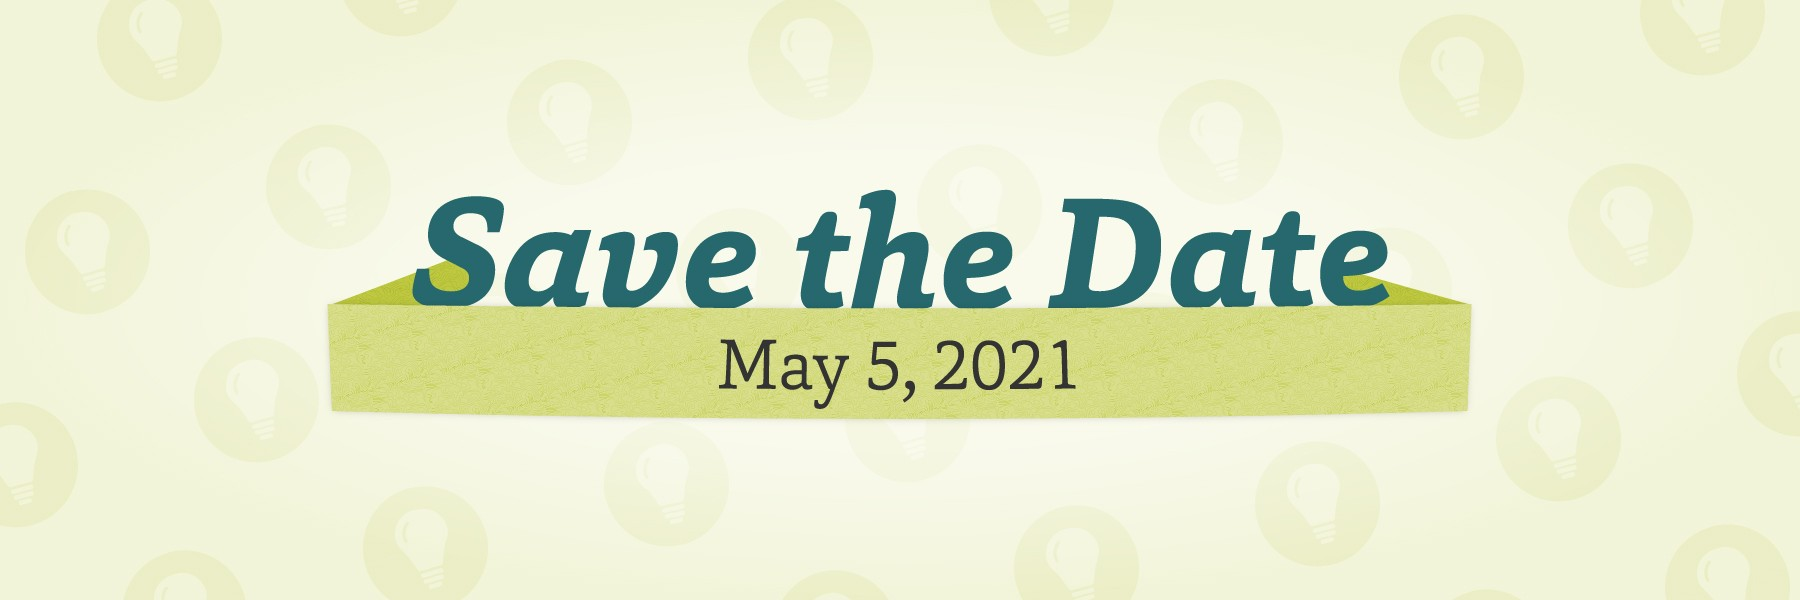 Save the Date - May 5, 2021